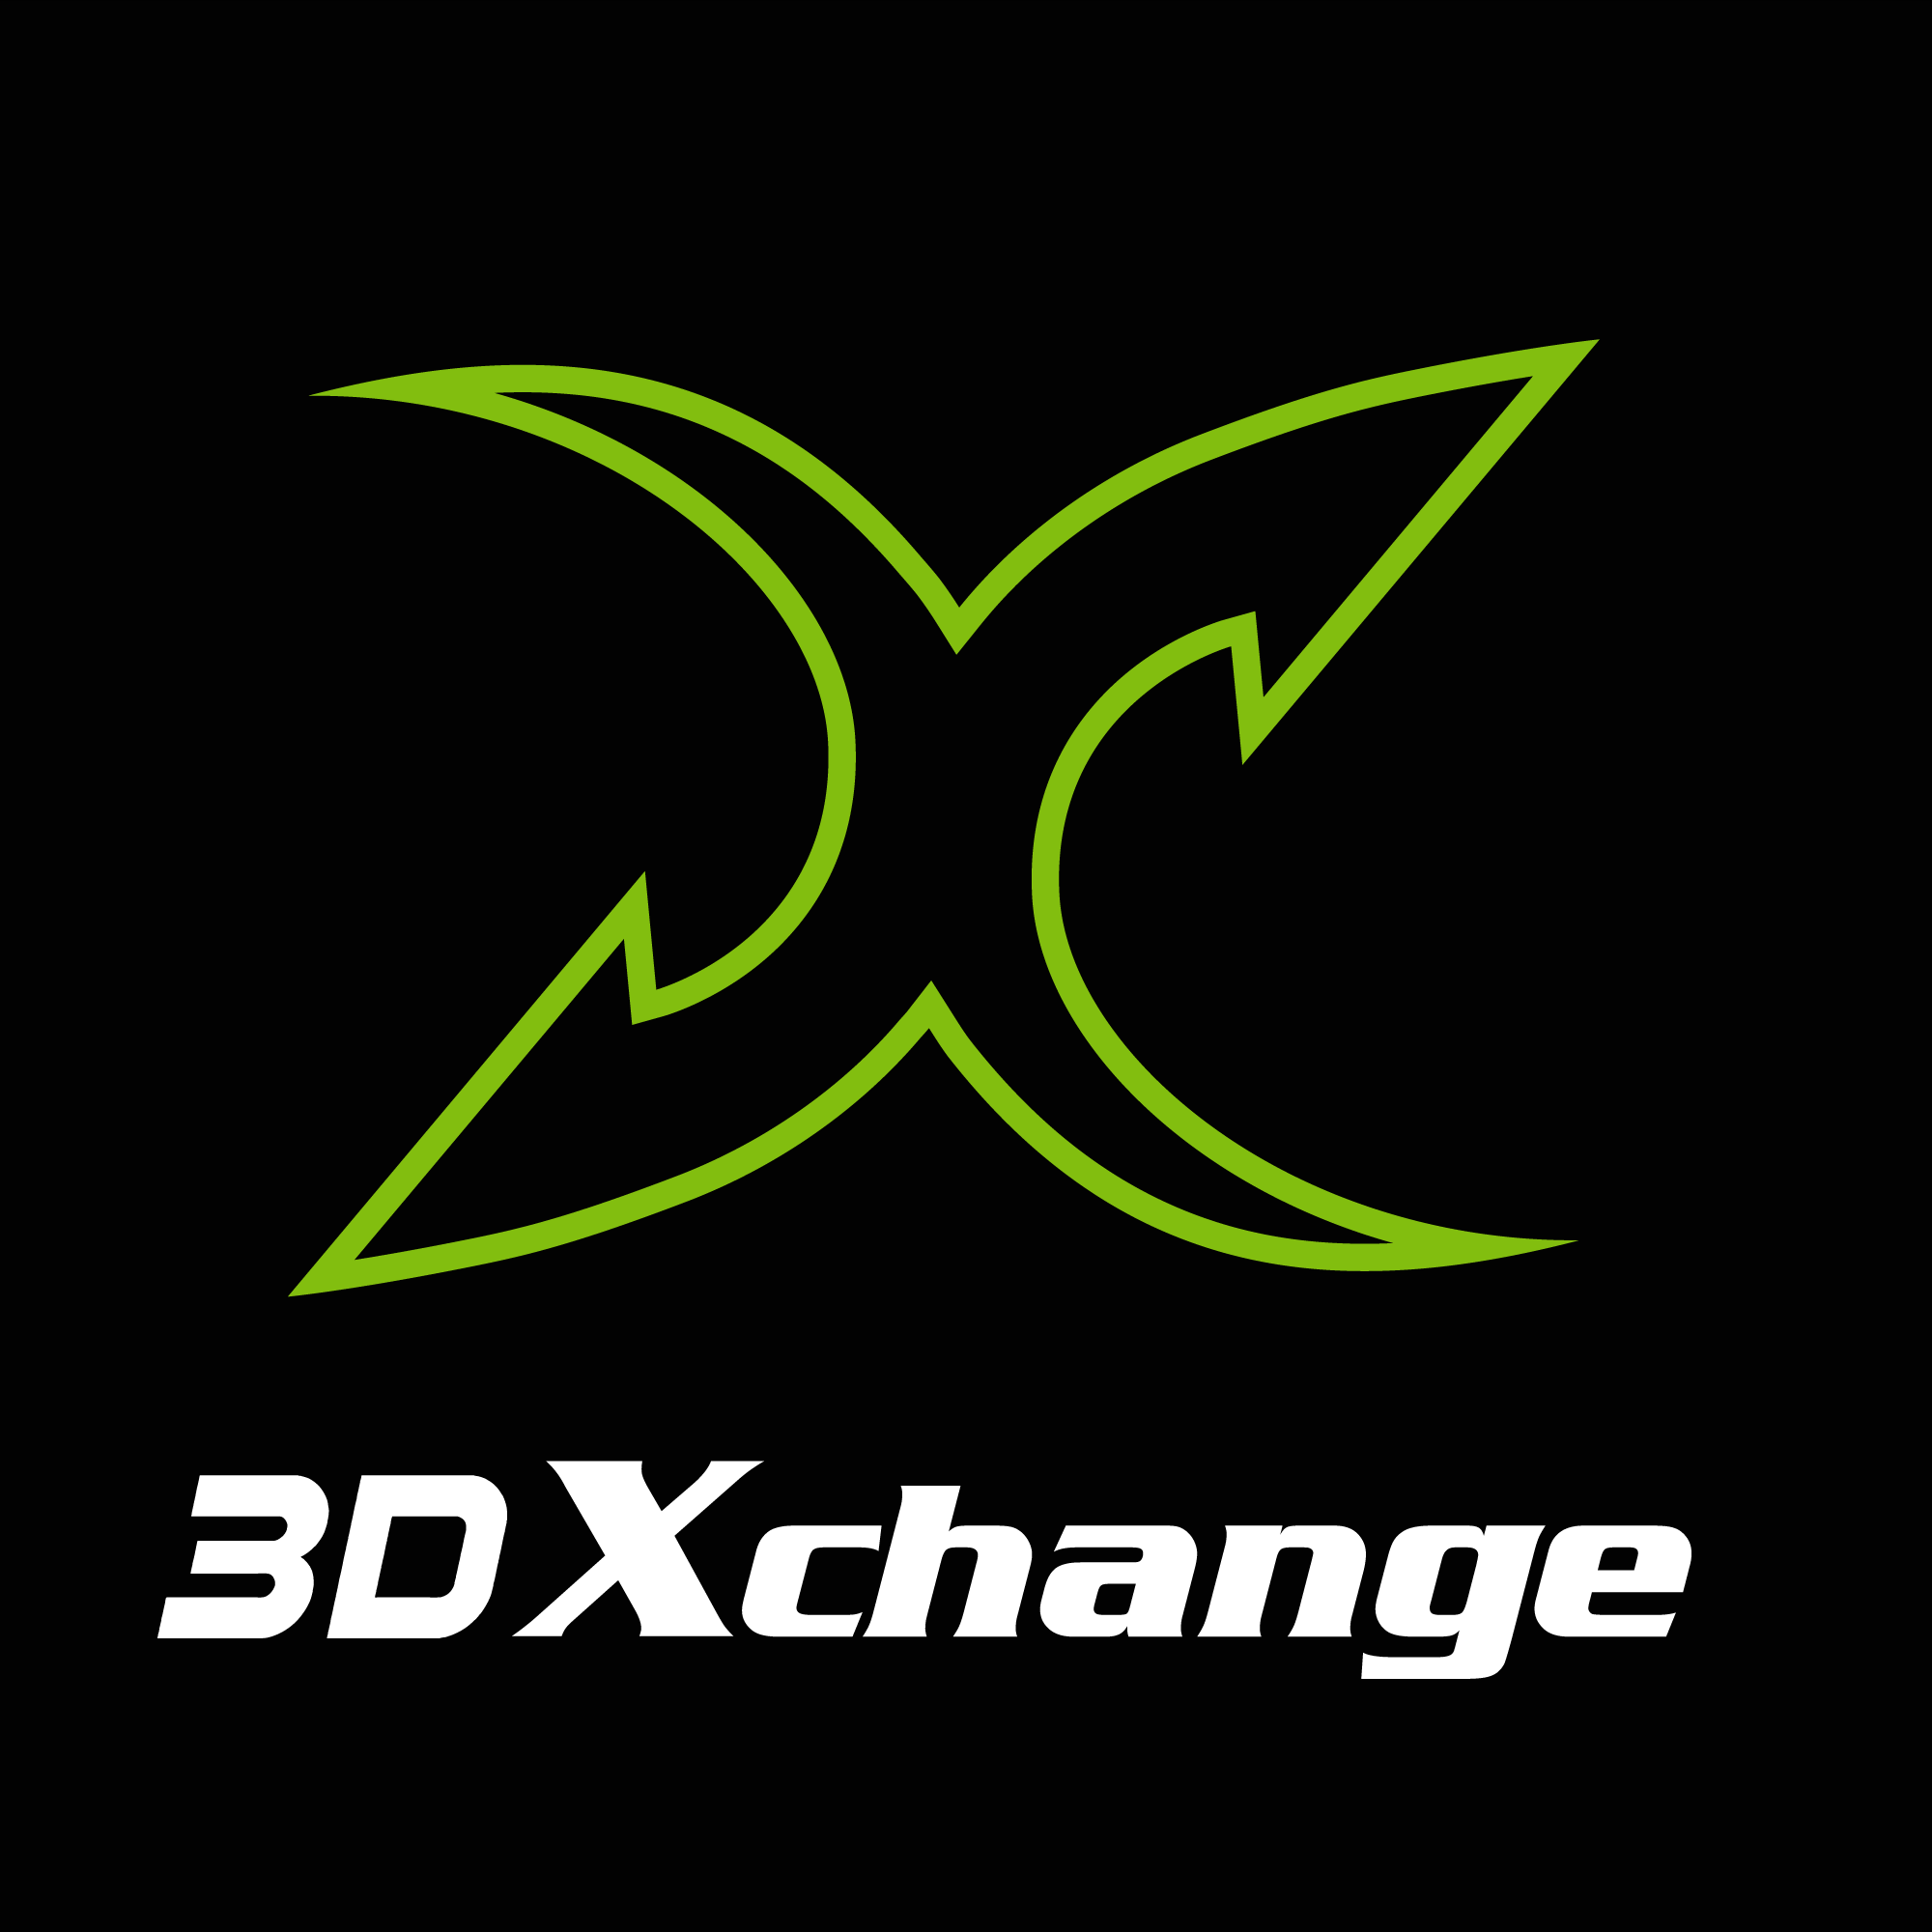 3DXchange-icon-logo-black-reallusion